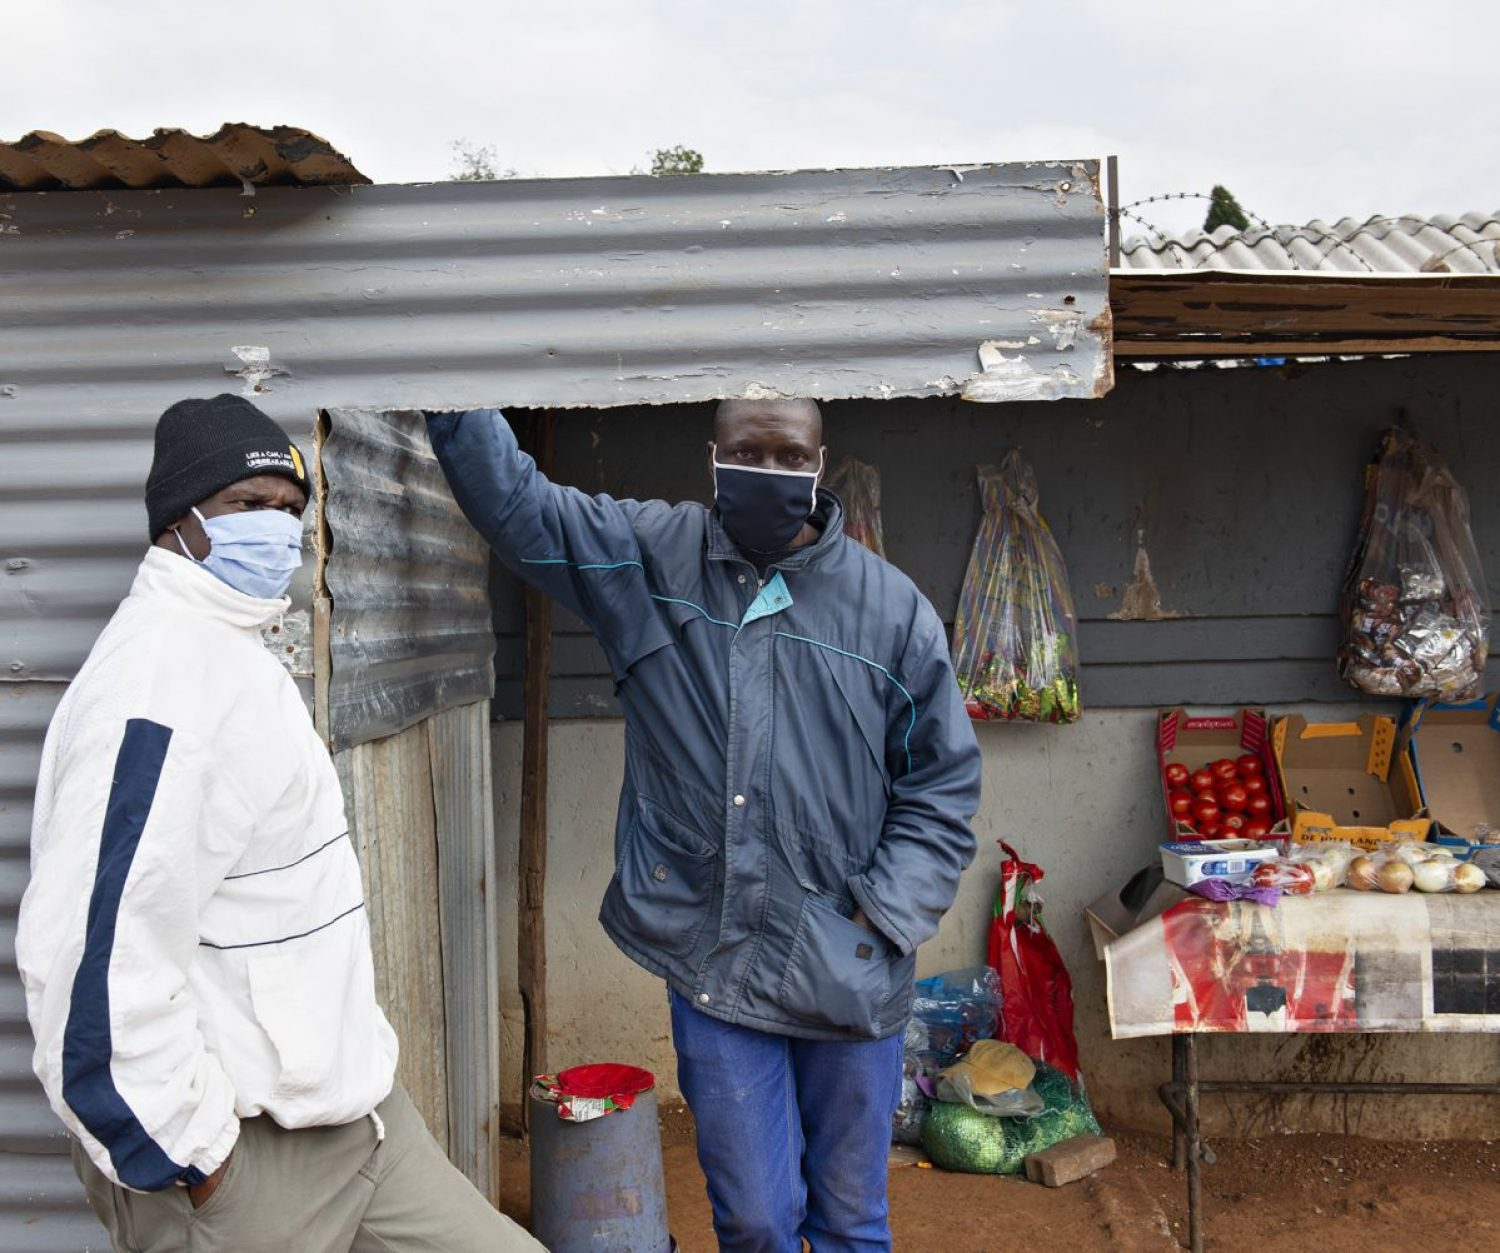 The lockdown added to economic hardship faced by many in South Africa, but it saved lives